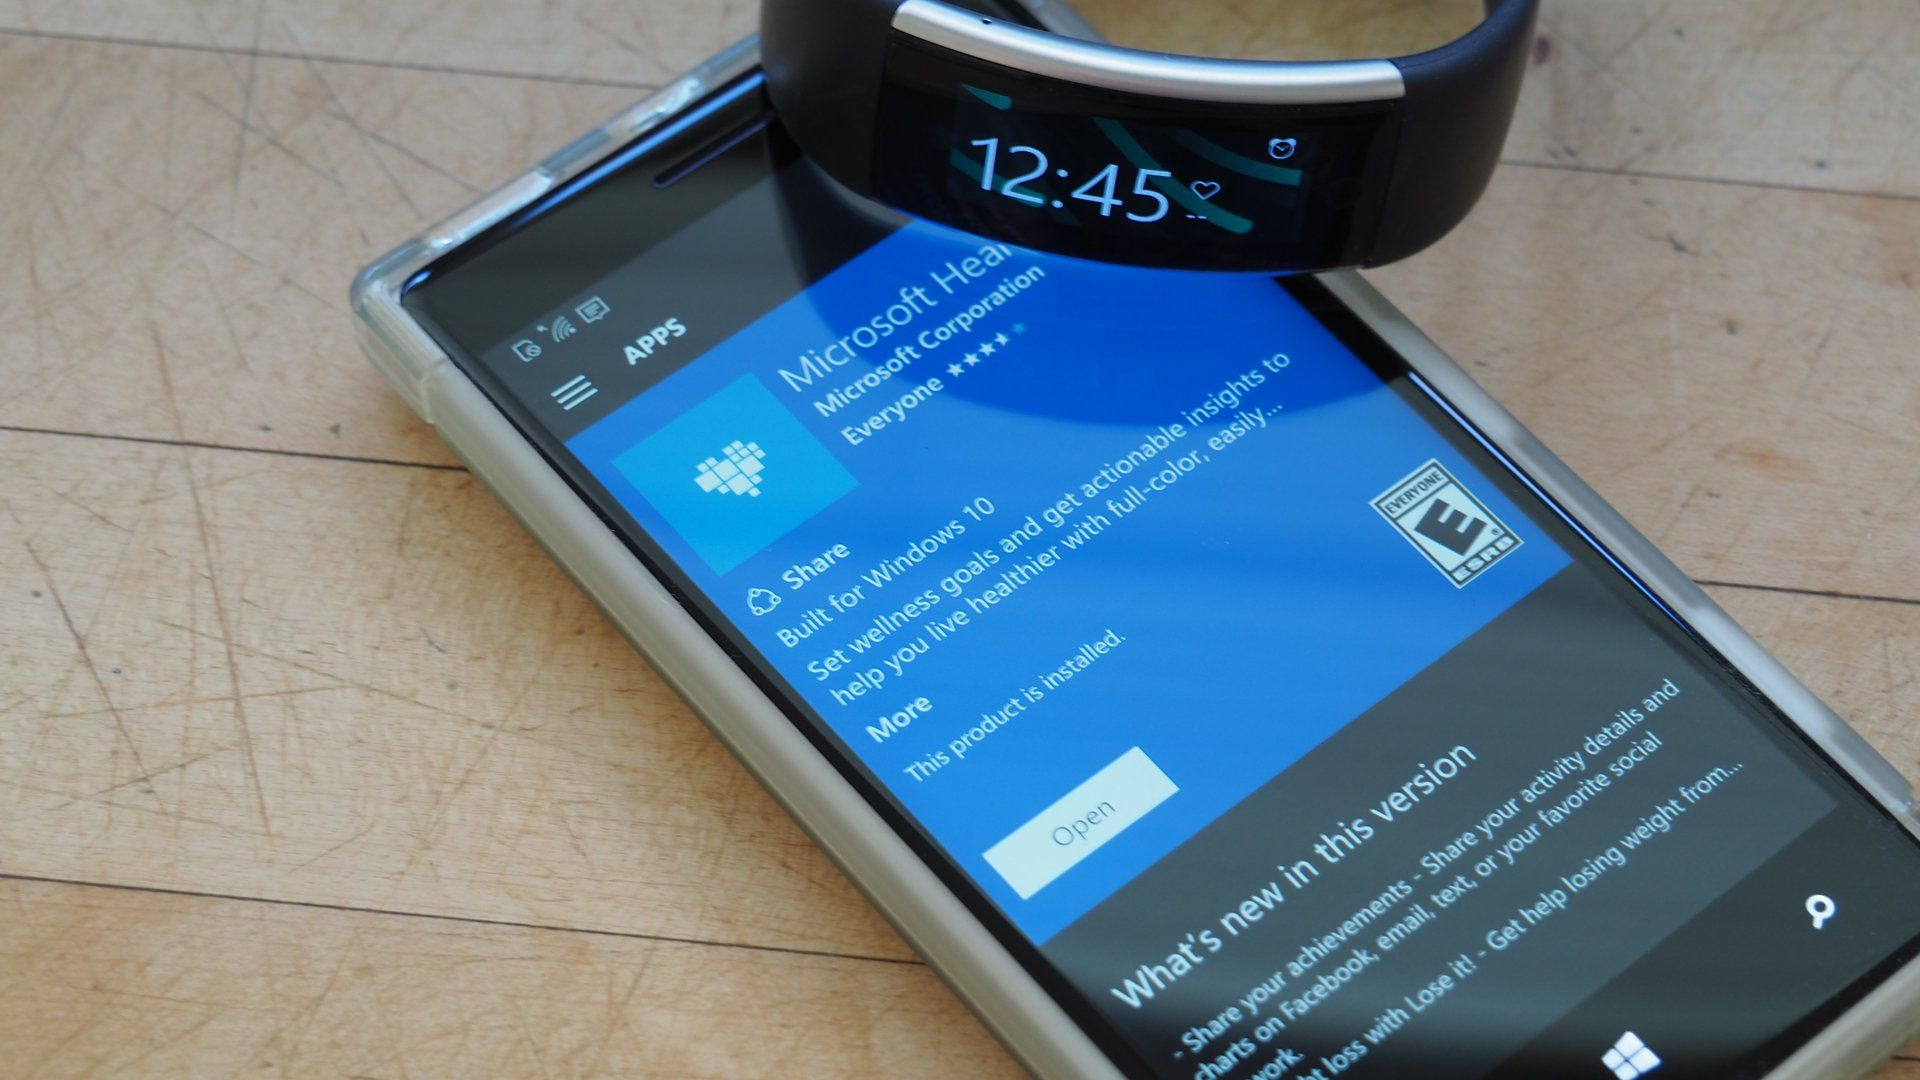 Microsoft's fitness solutions, specifically the Health app